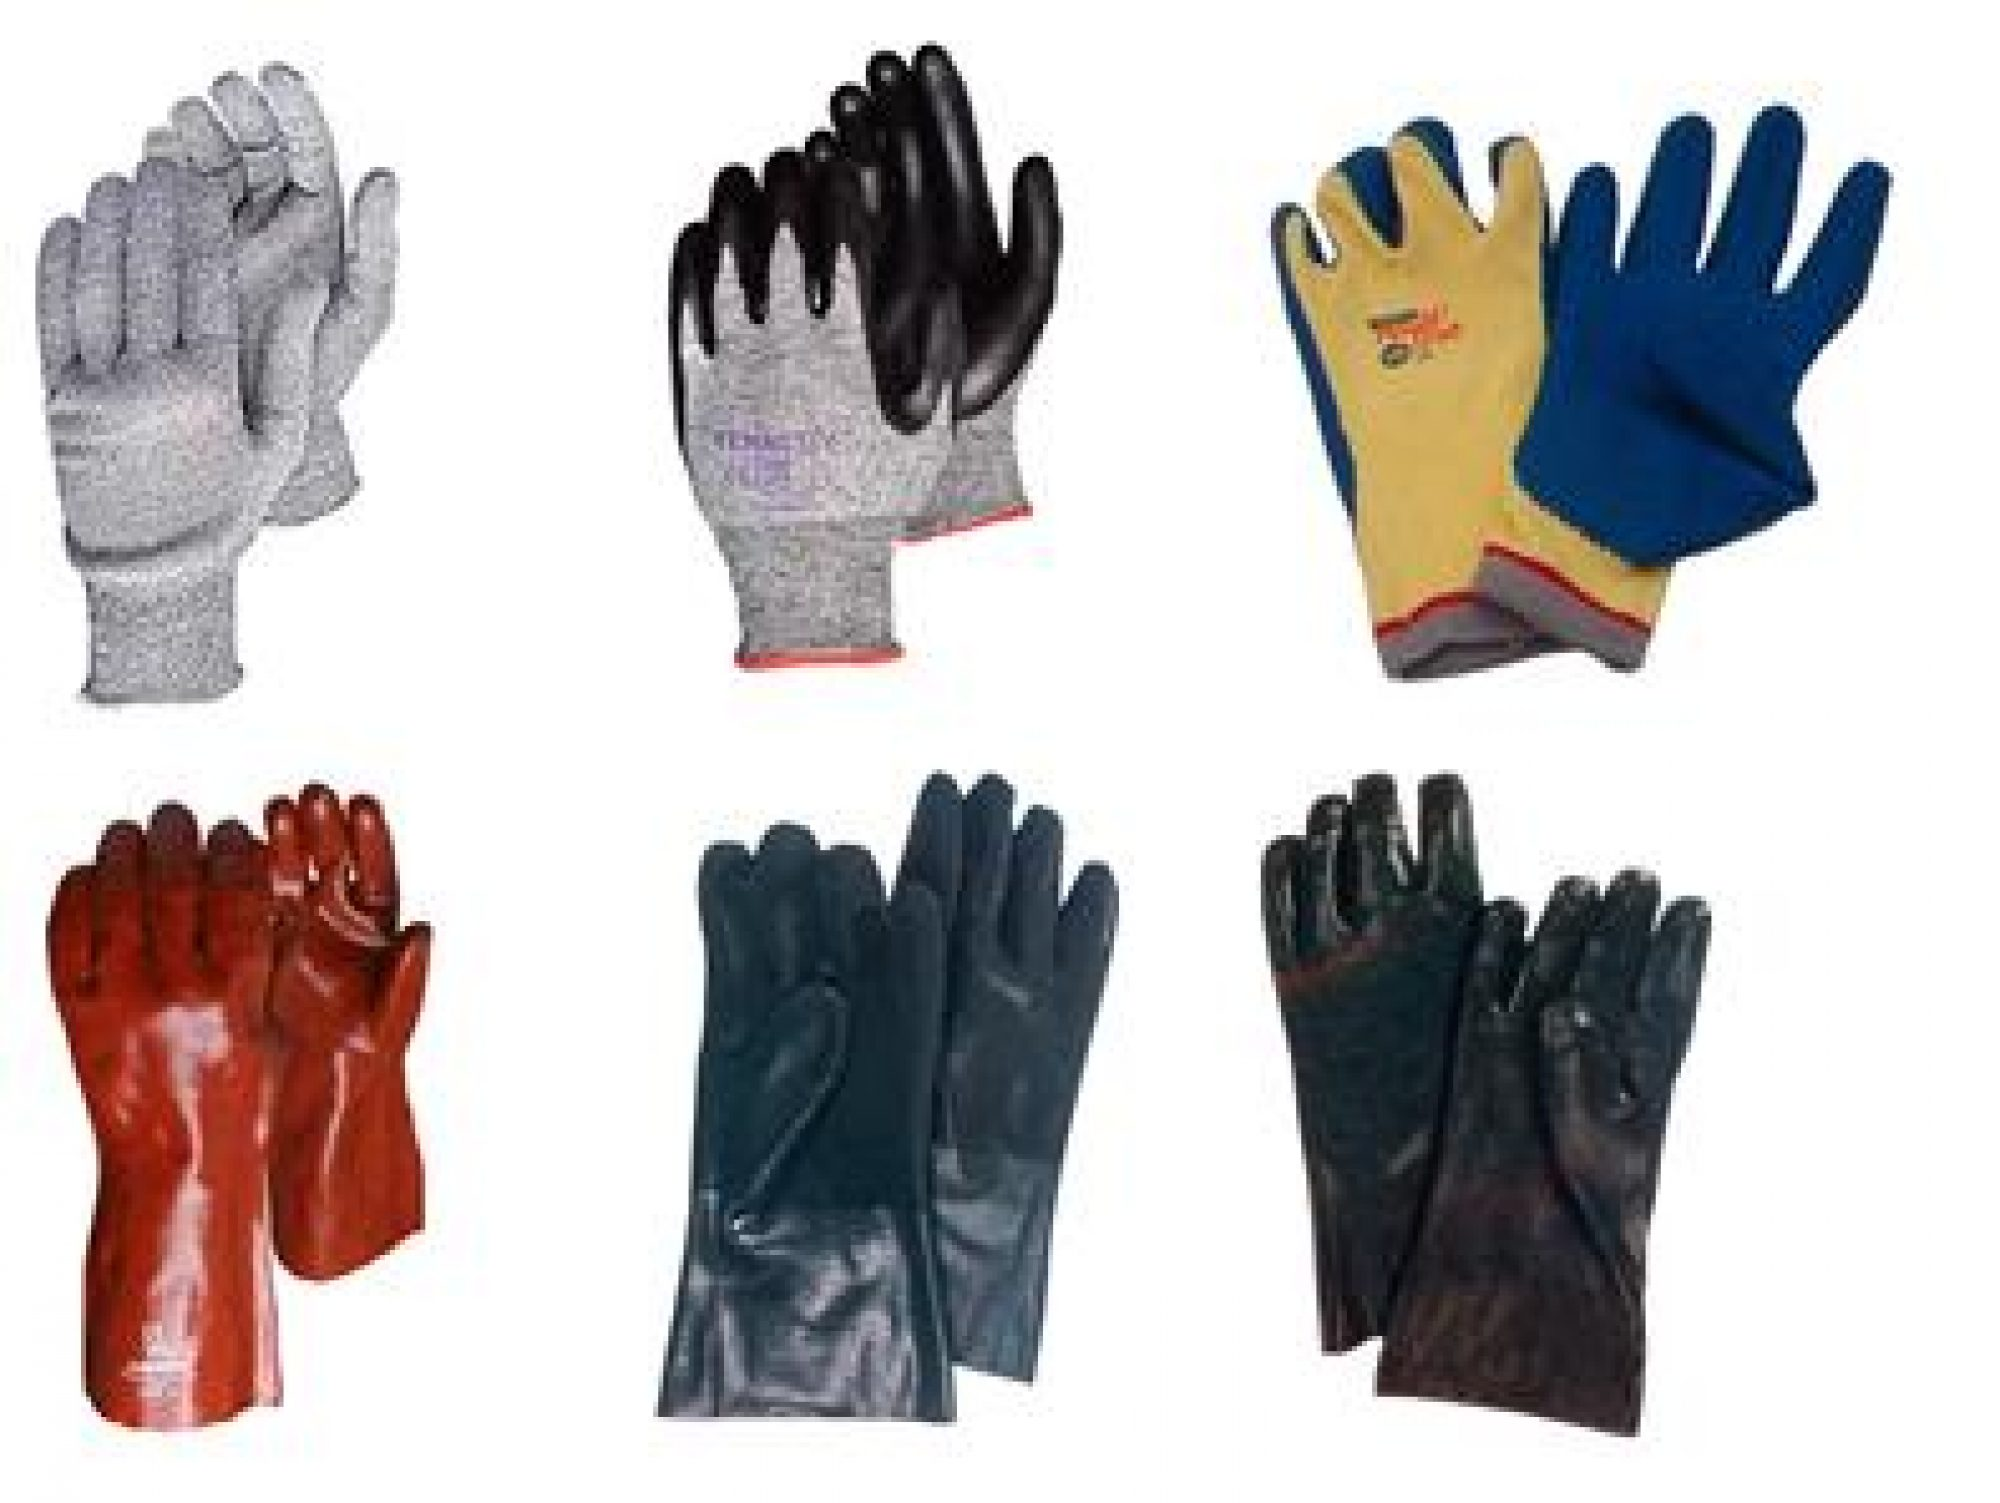 The codex of coated knitting gloves.